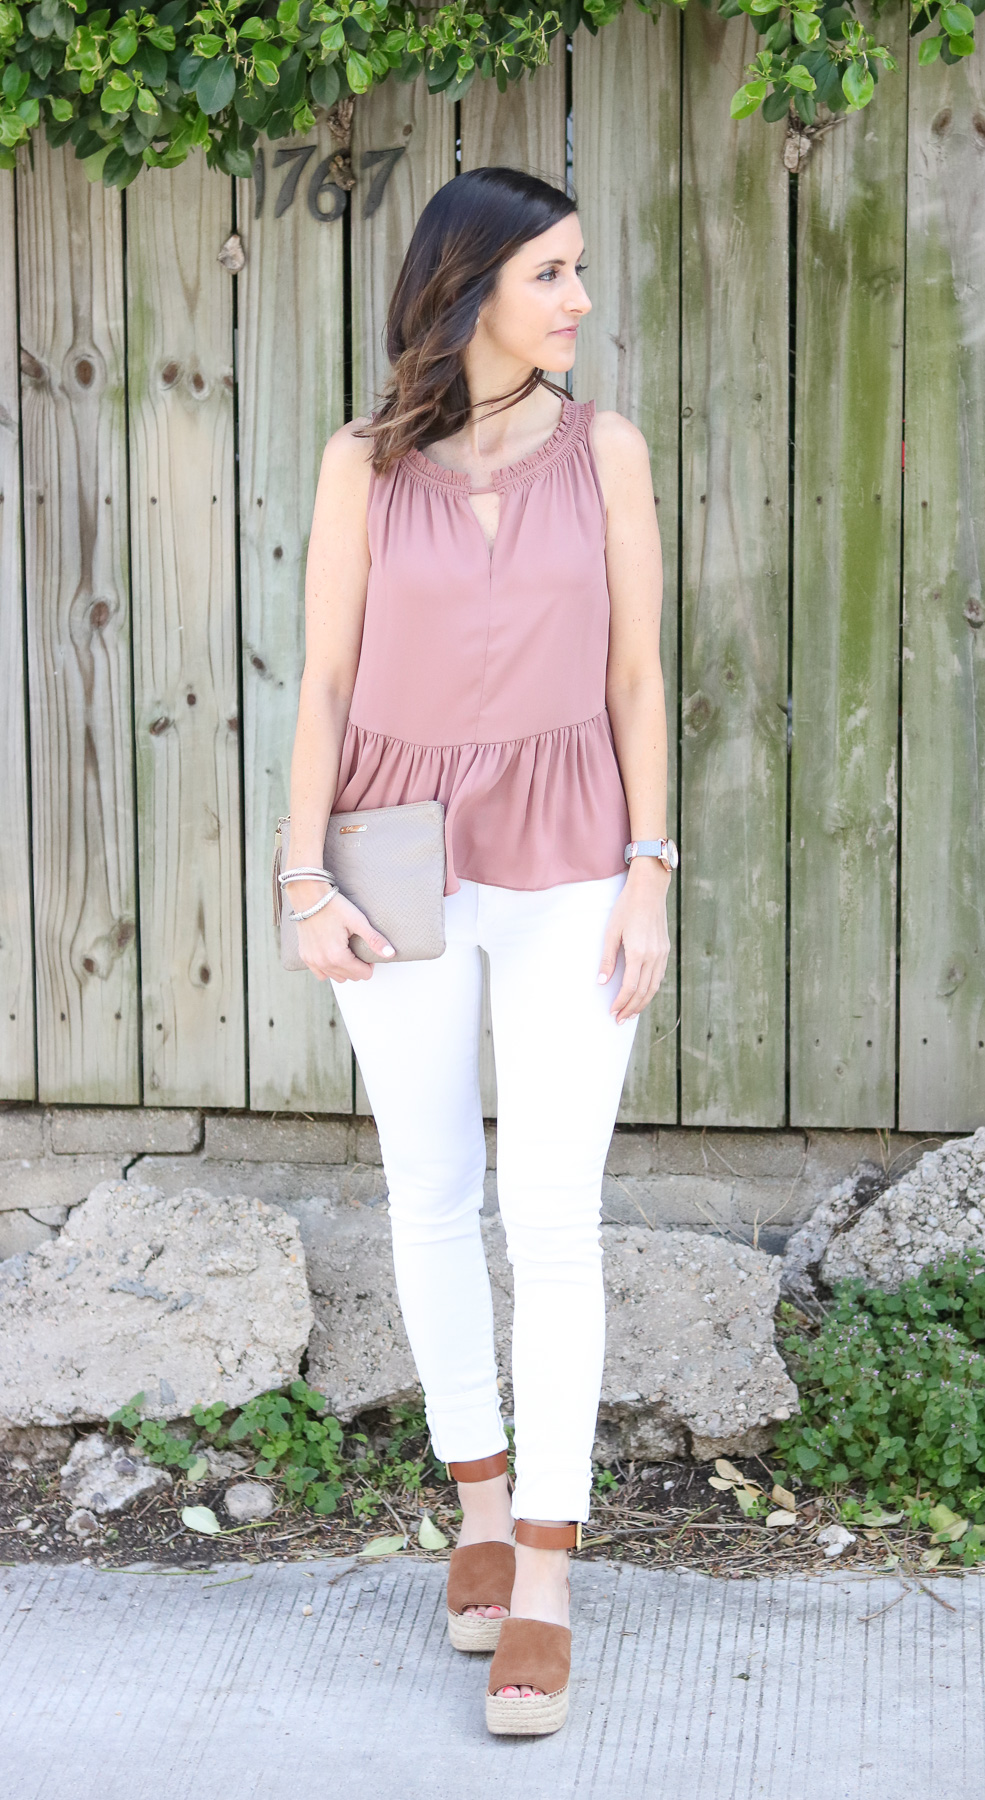 Blush Top @cobaltchornicle